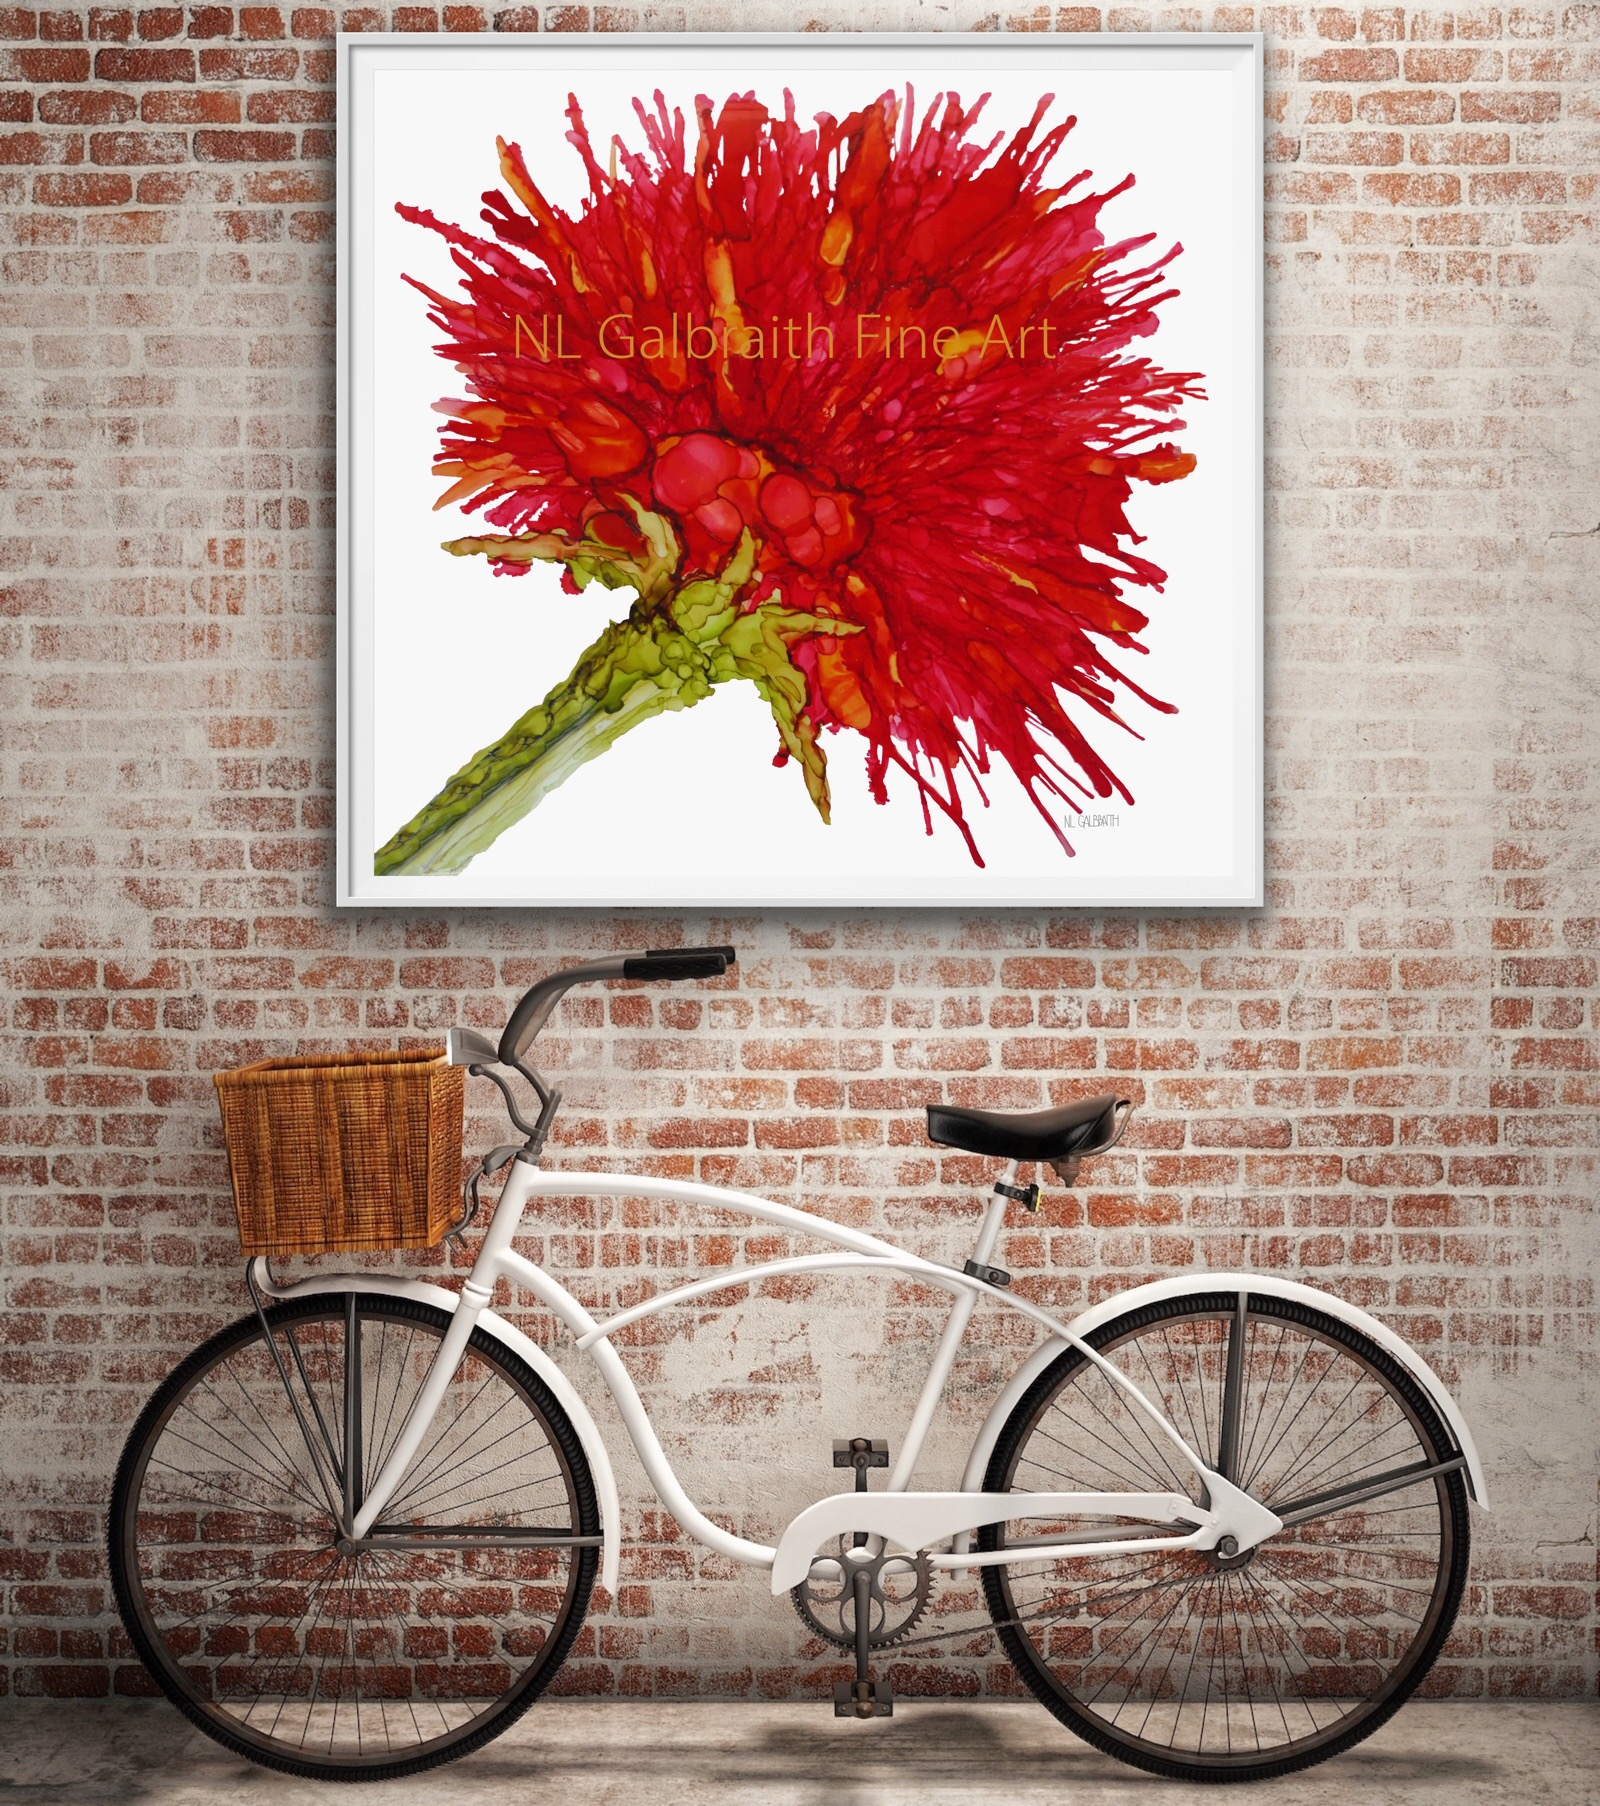 Oversized Crimson Red Flower Graphic on a Brick Wall Over a Bike